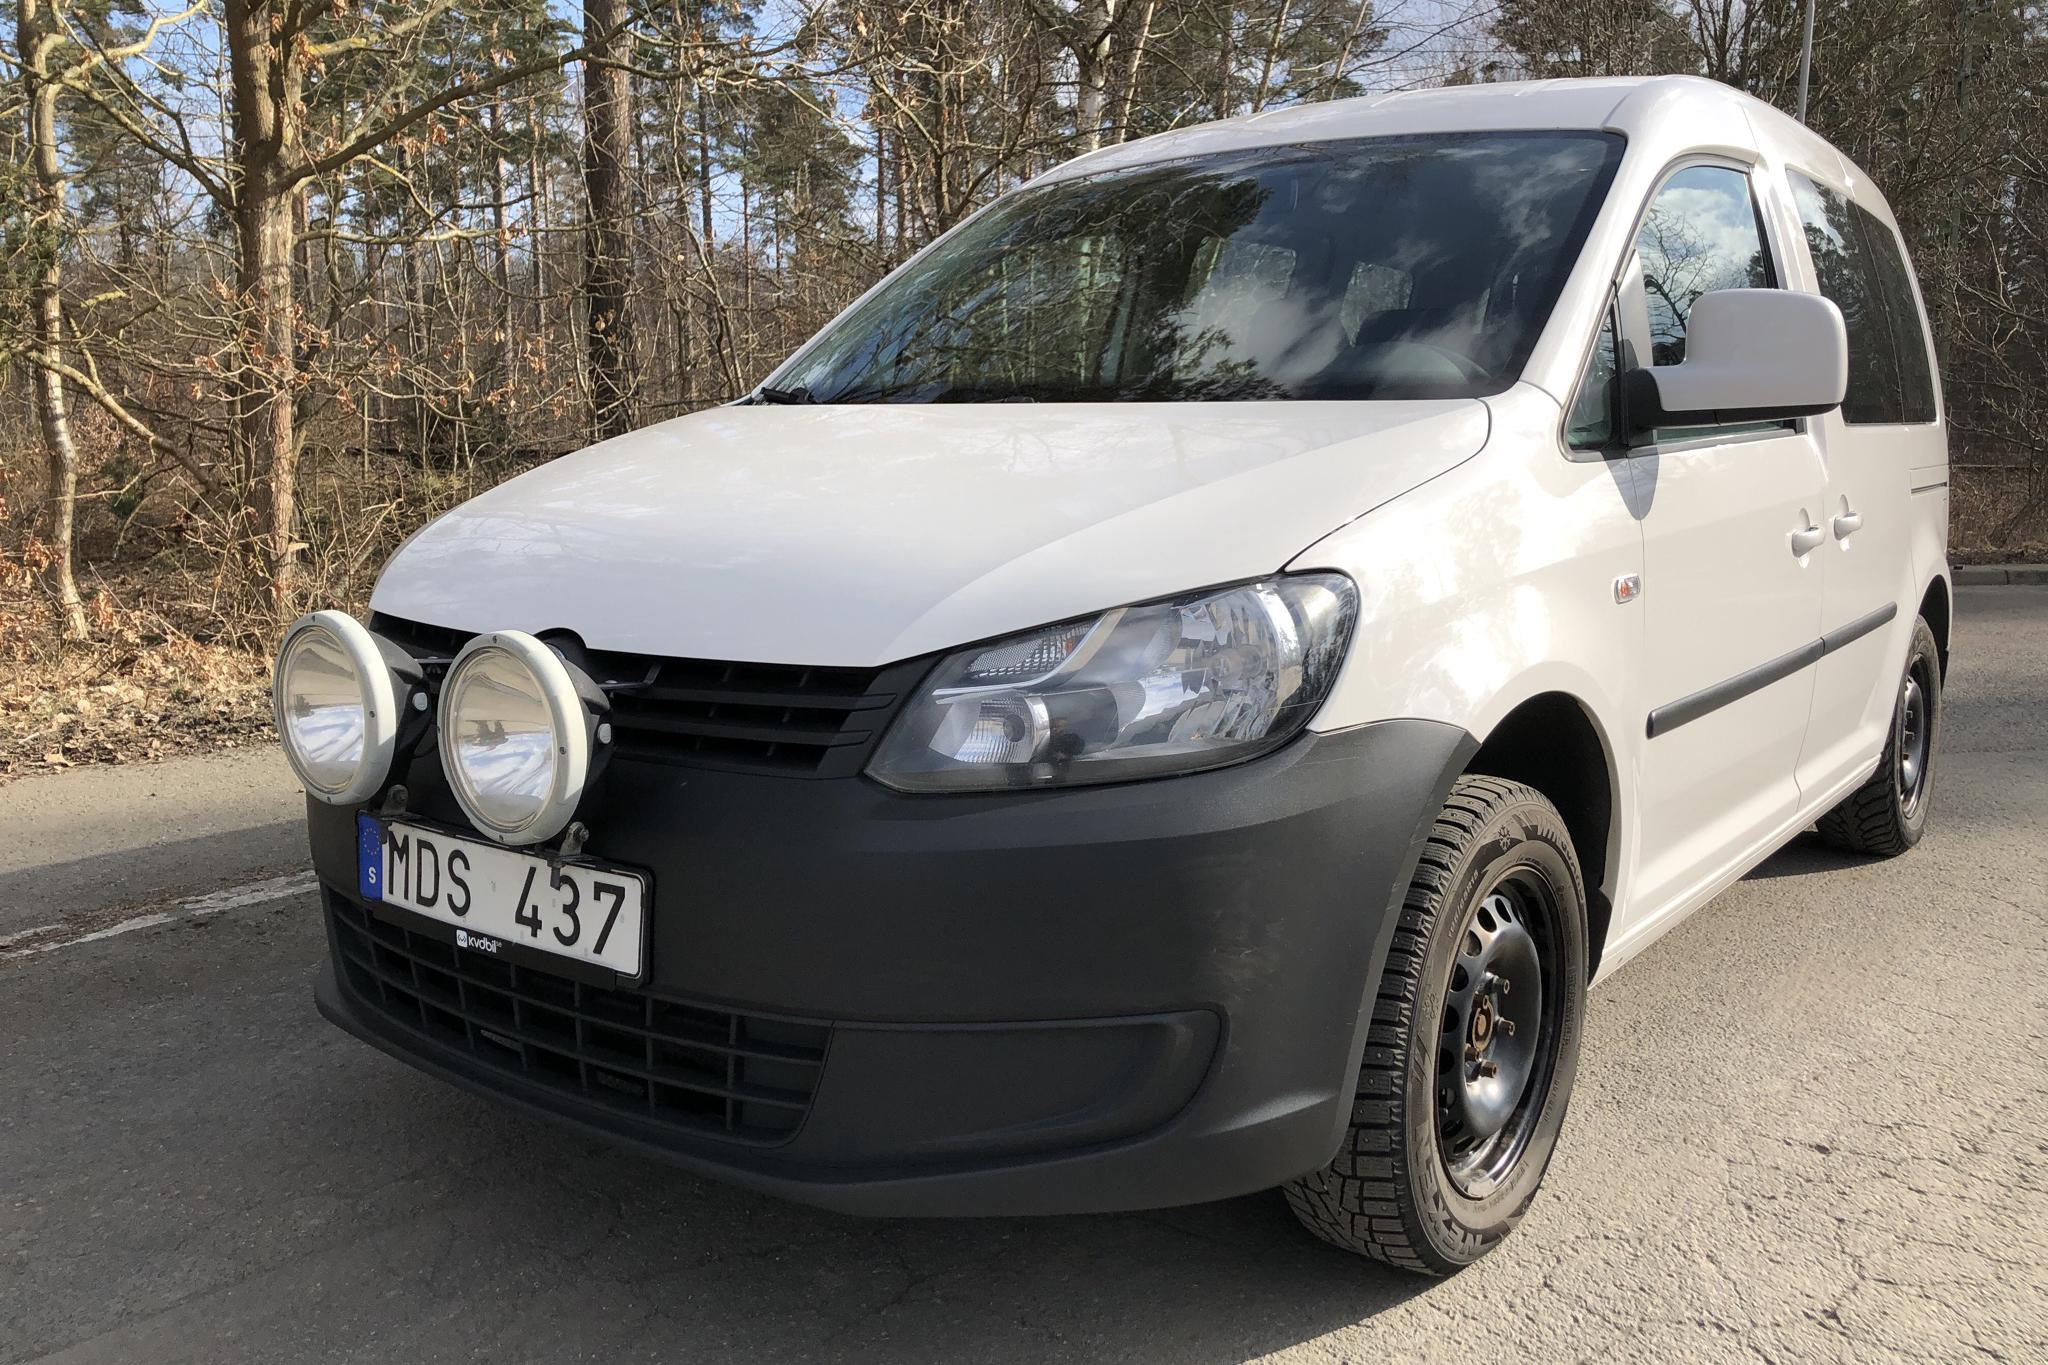 VW Caddy MPV 1.6 TDI (102hk) - 221 690 km - Manual - white - 2012